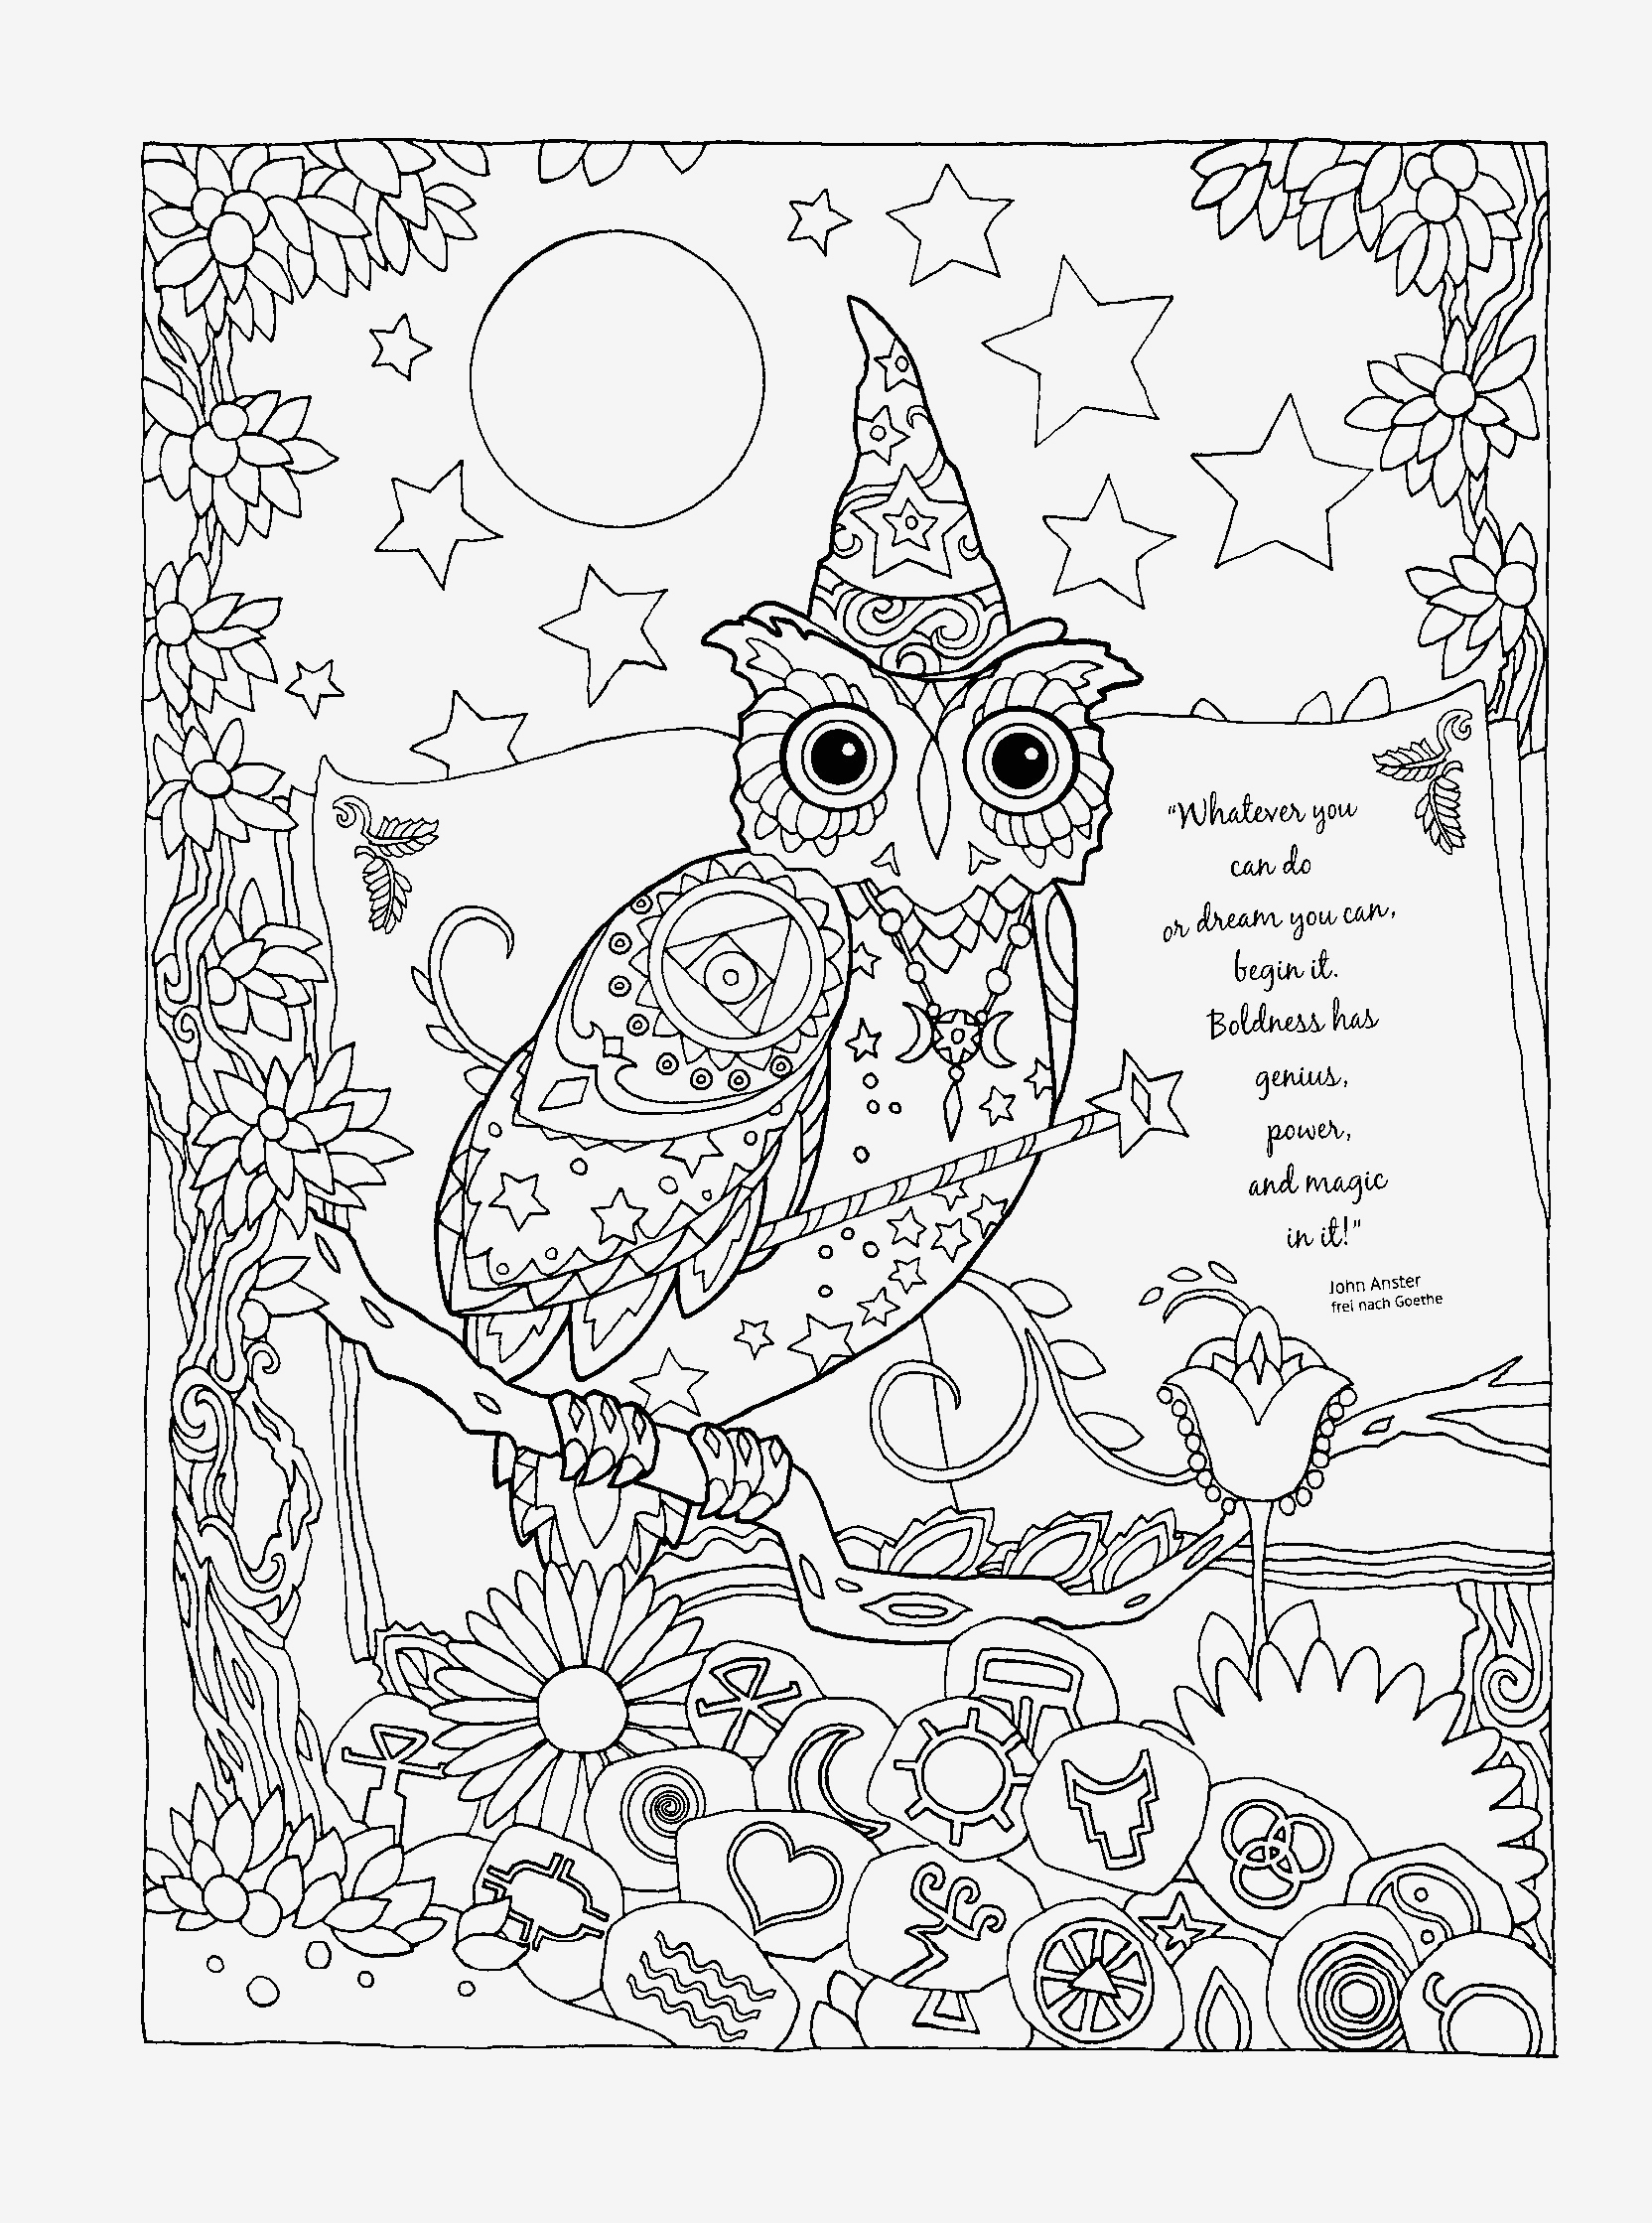 bird coloring pages for kids Download-Eye Coloring Page Coloring & Activity Coloring Pages Trains Free Download Eye Coloring Page Free 18-r